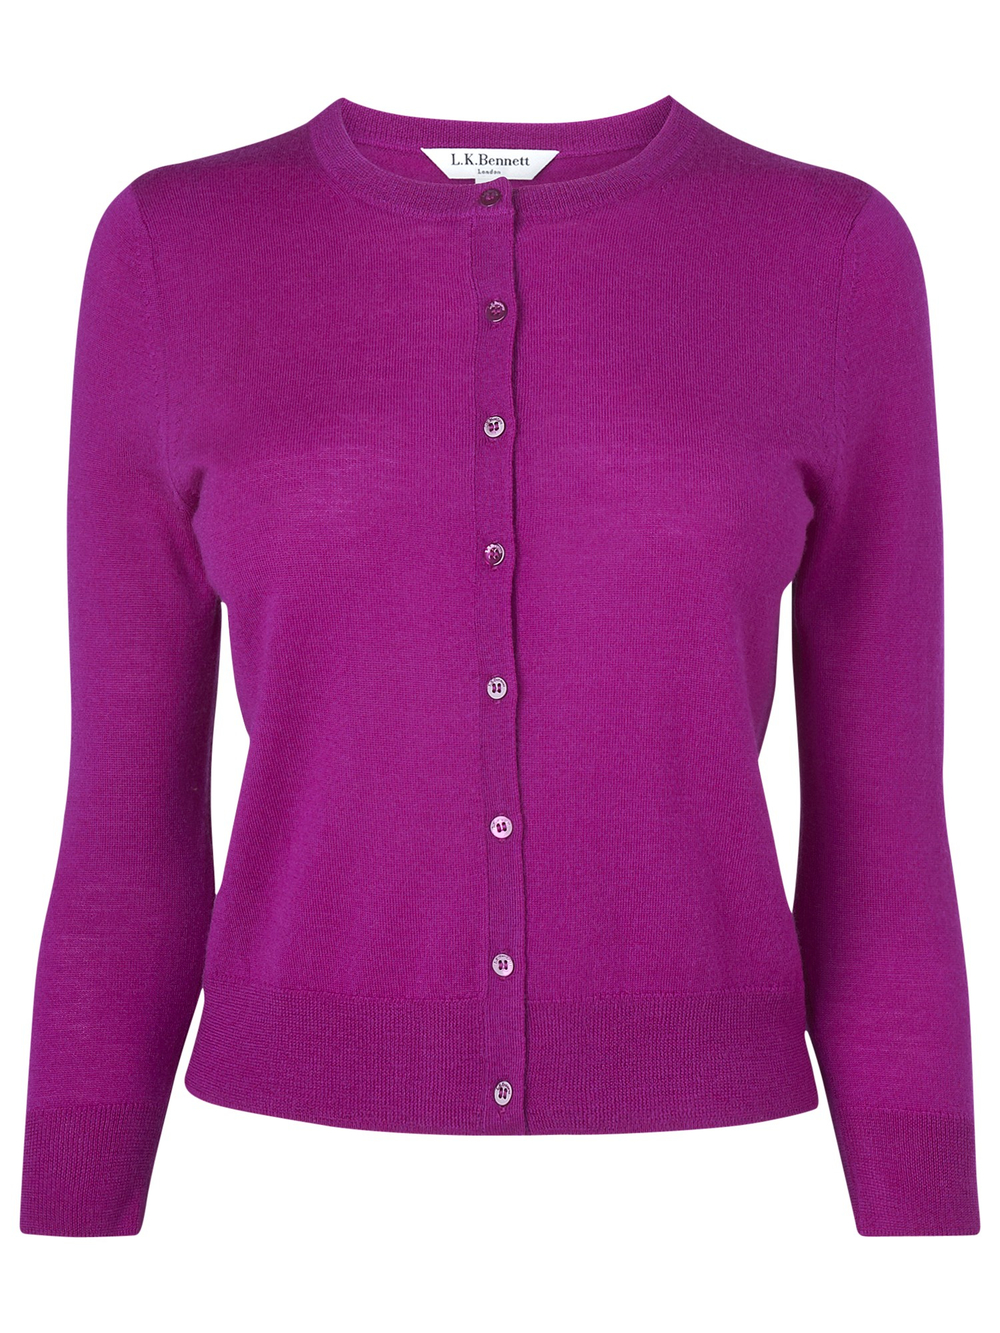 lk-bennett-orchid-bonnie-crew-neck-cardigan-product-2-409873709-normal.jpeg